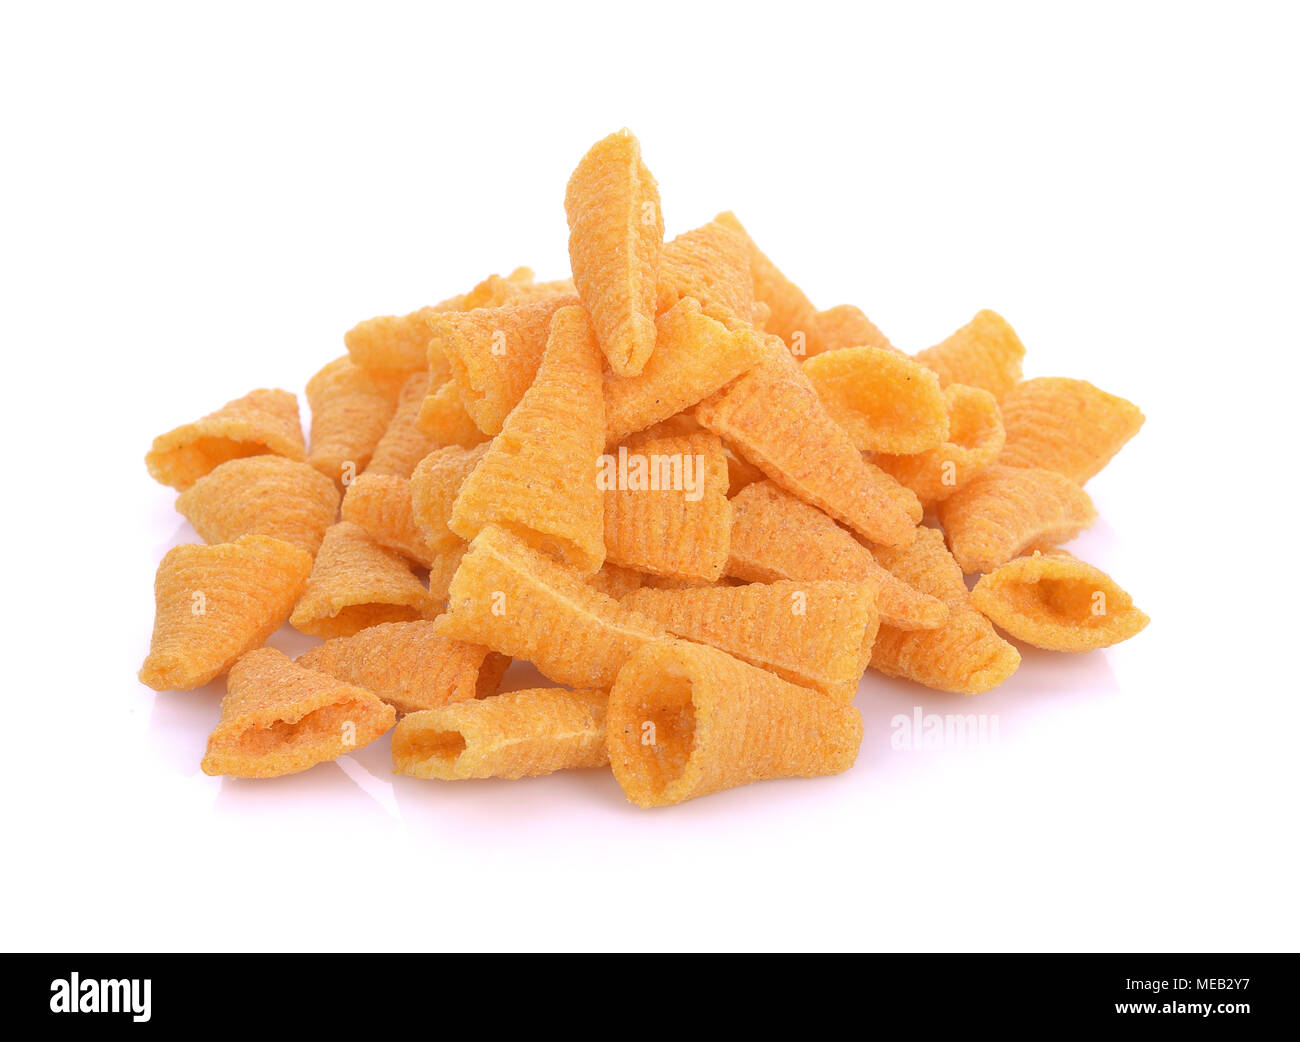 corn snacks on a white background - Stock Image